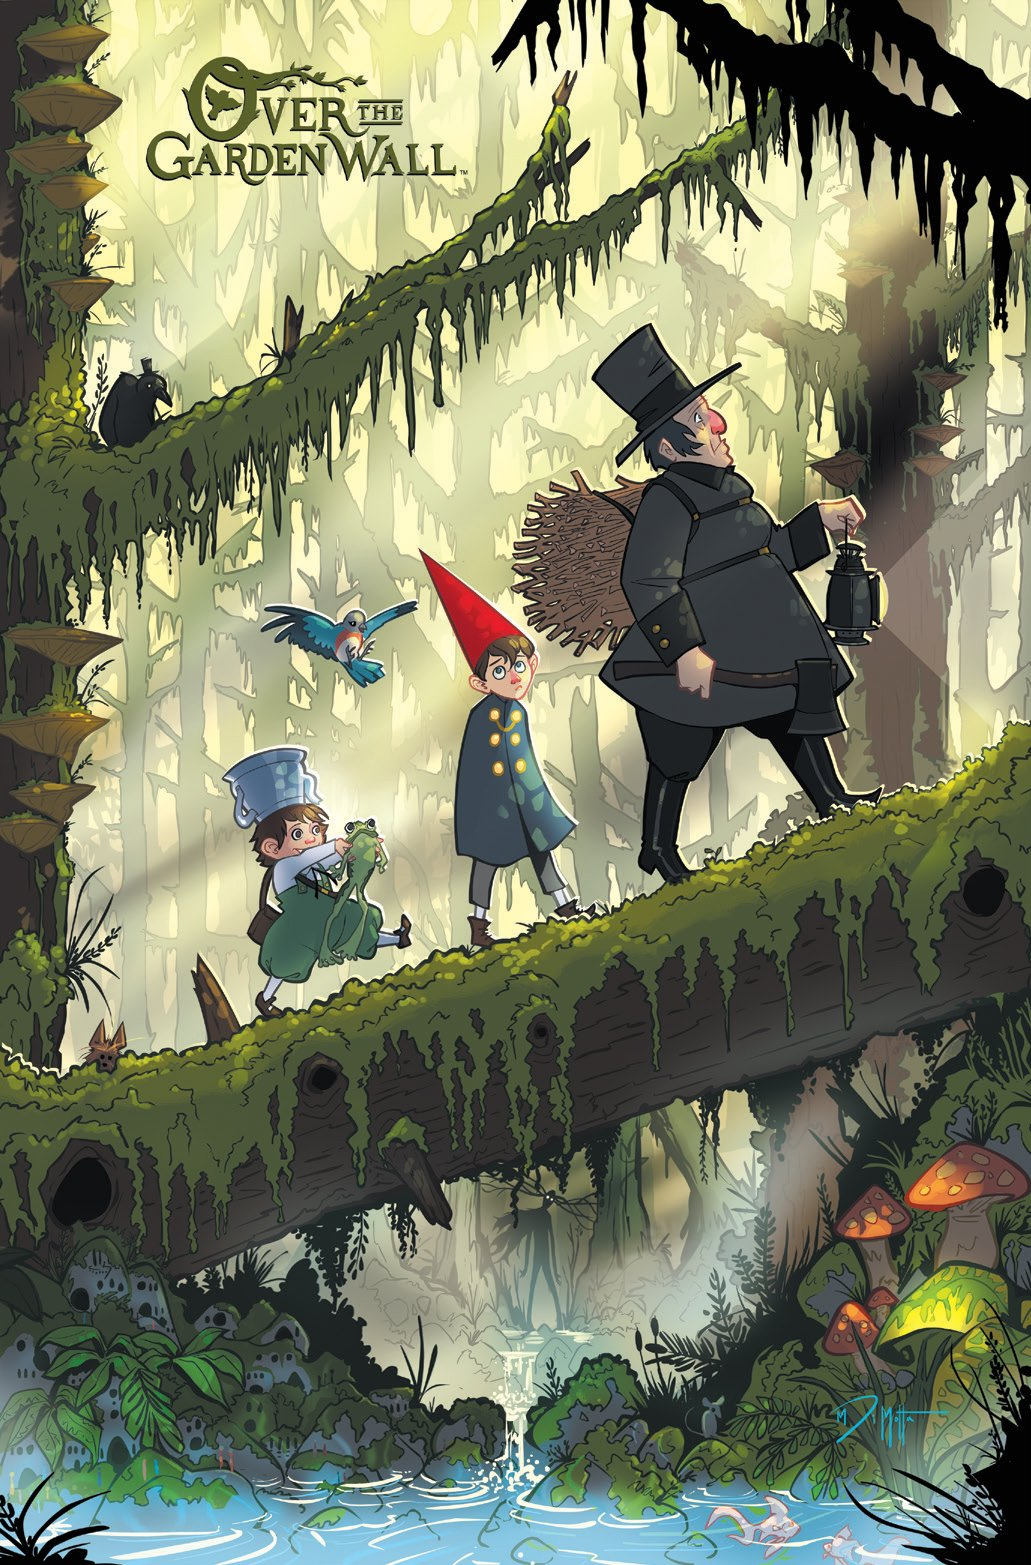 Make It Happen >> Over the Garden Wall Preview First Issue | The Mary Sue